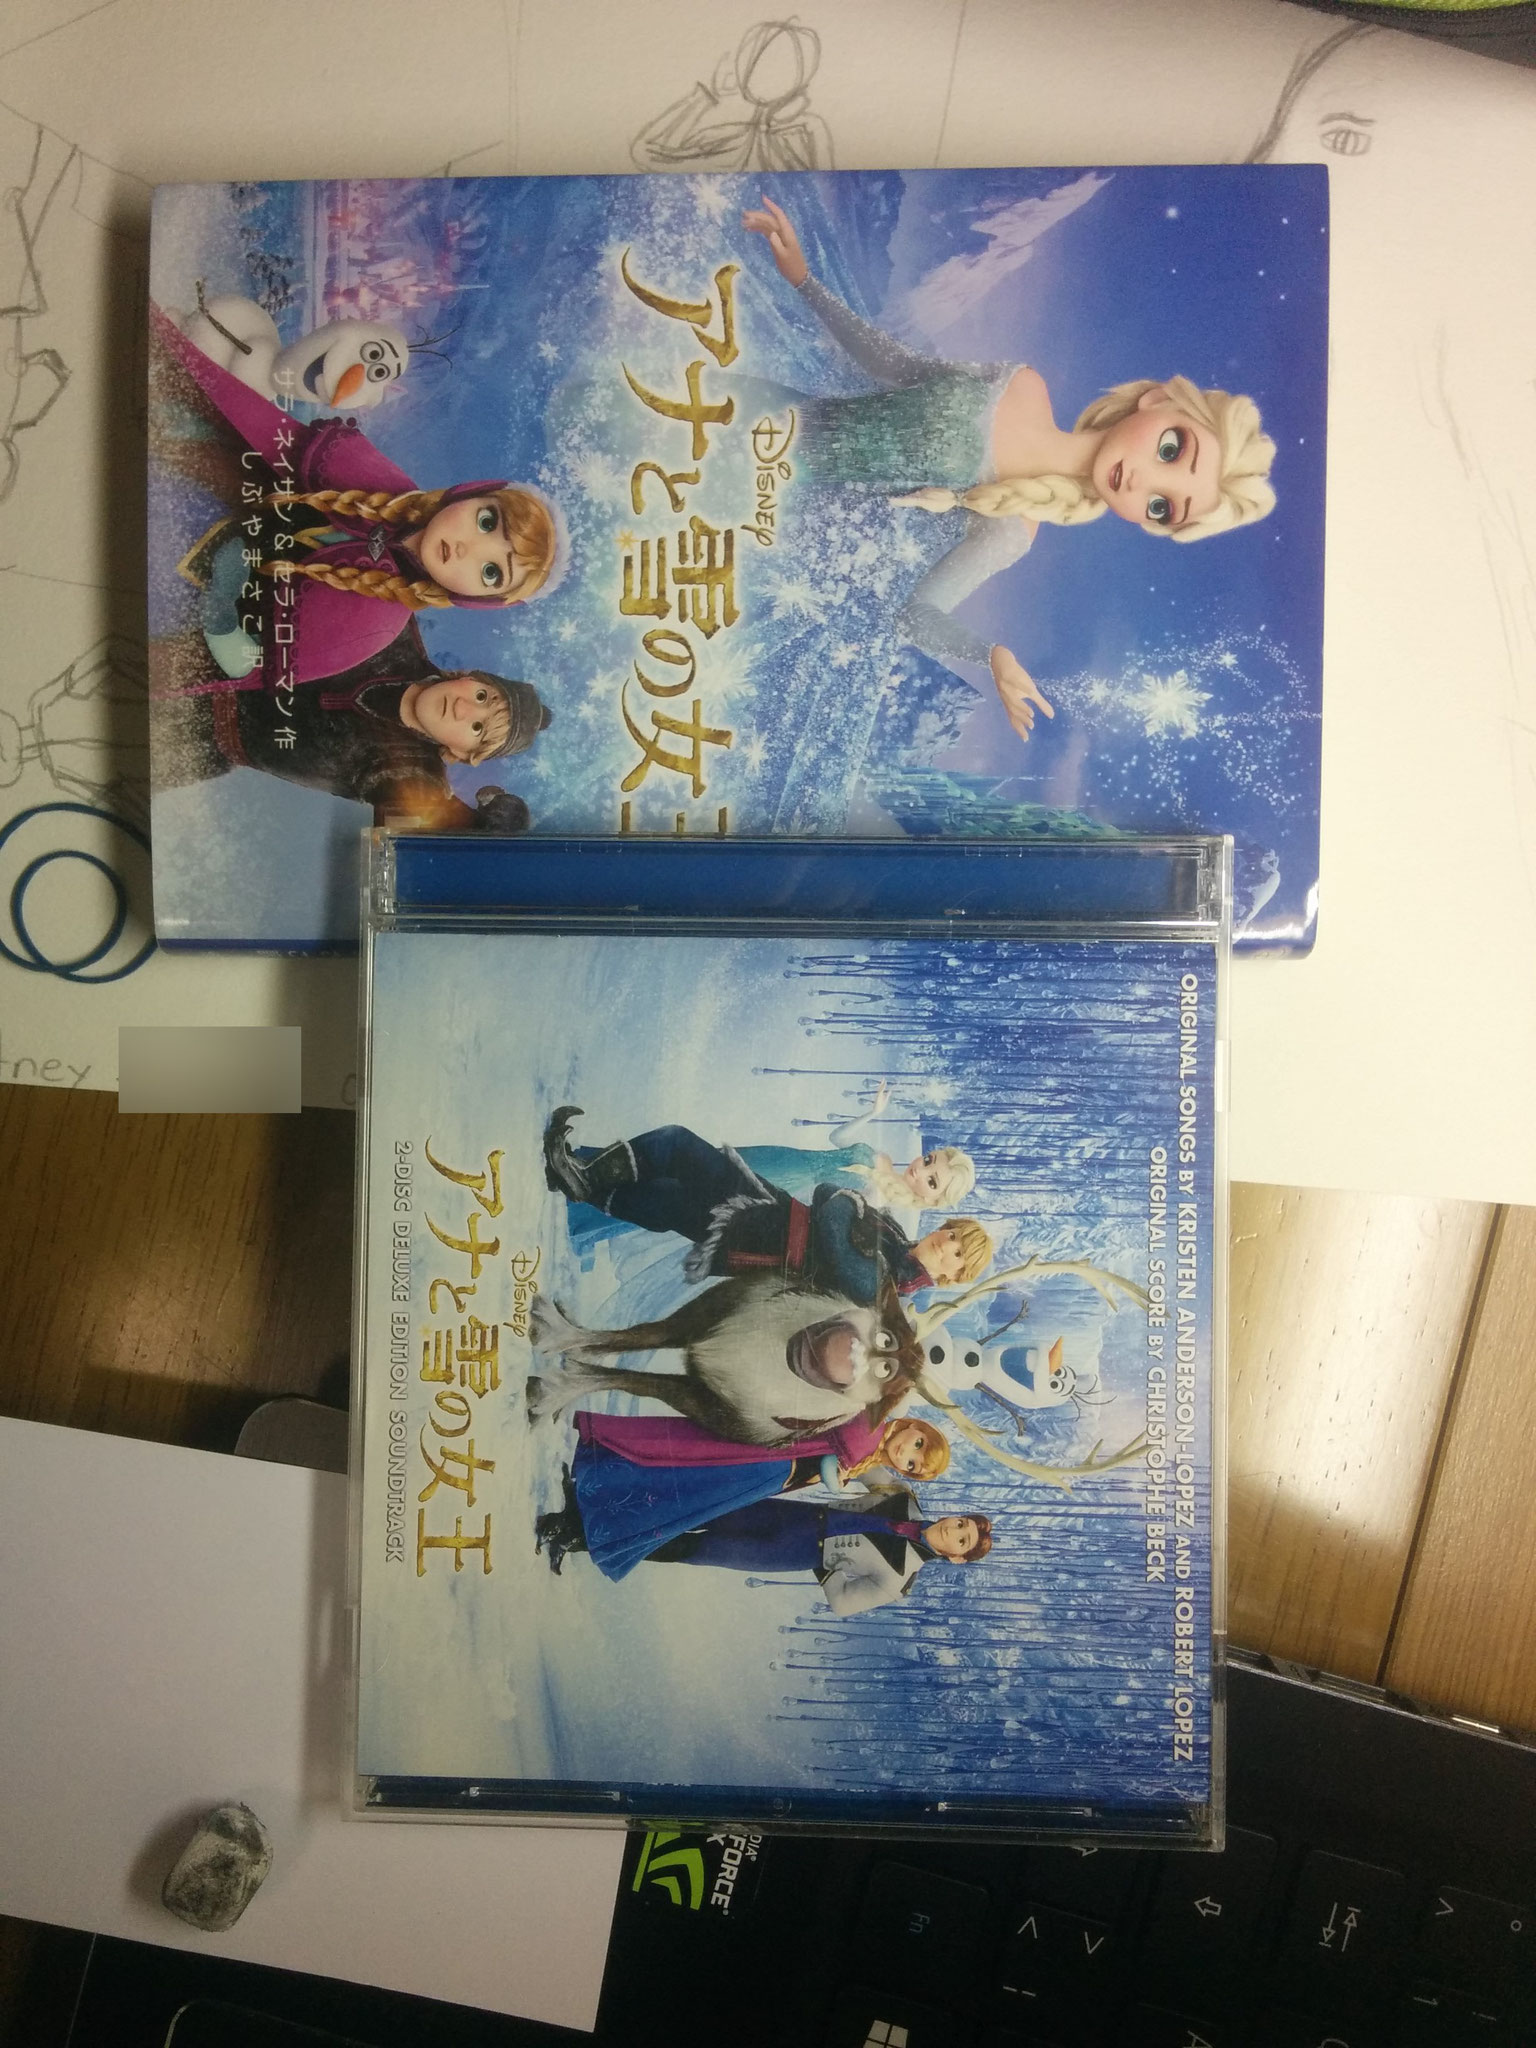 30 Gifts from my hostmum - I love Frozen! (THANK YOU!!)